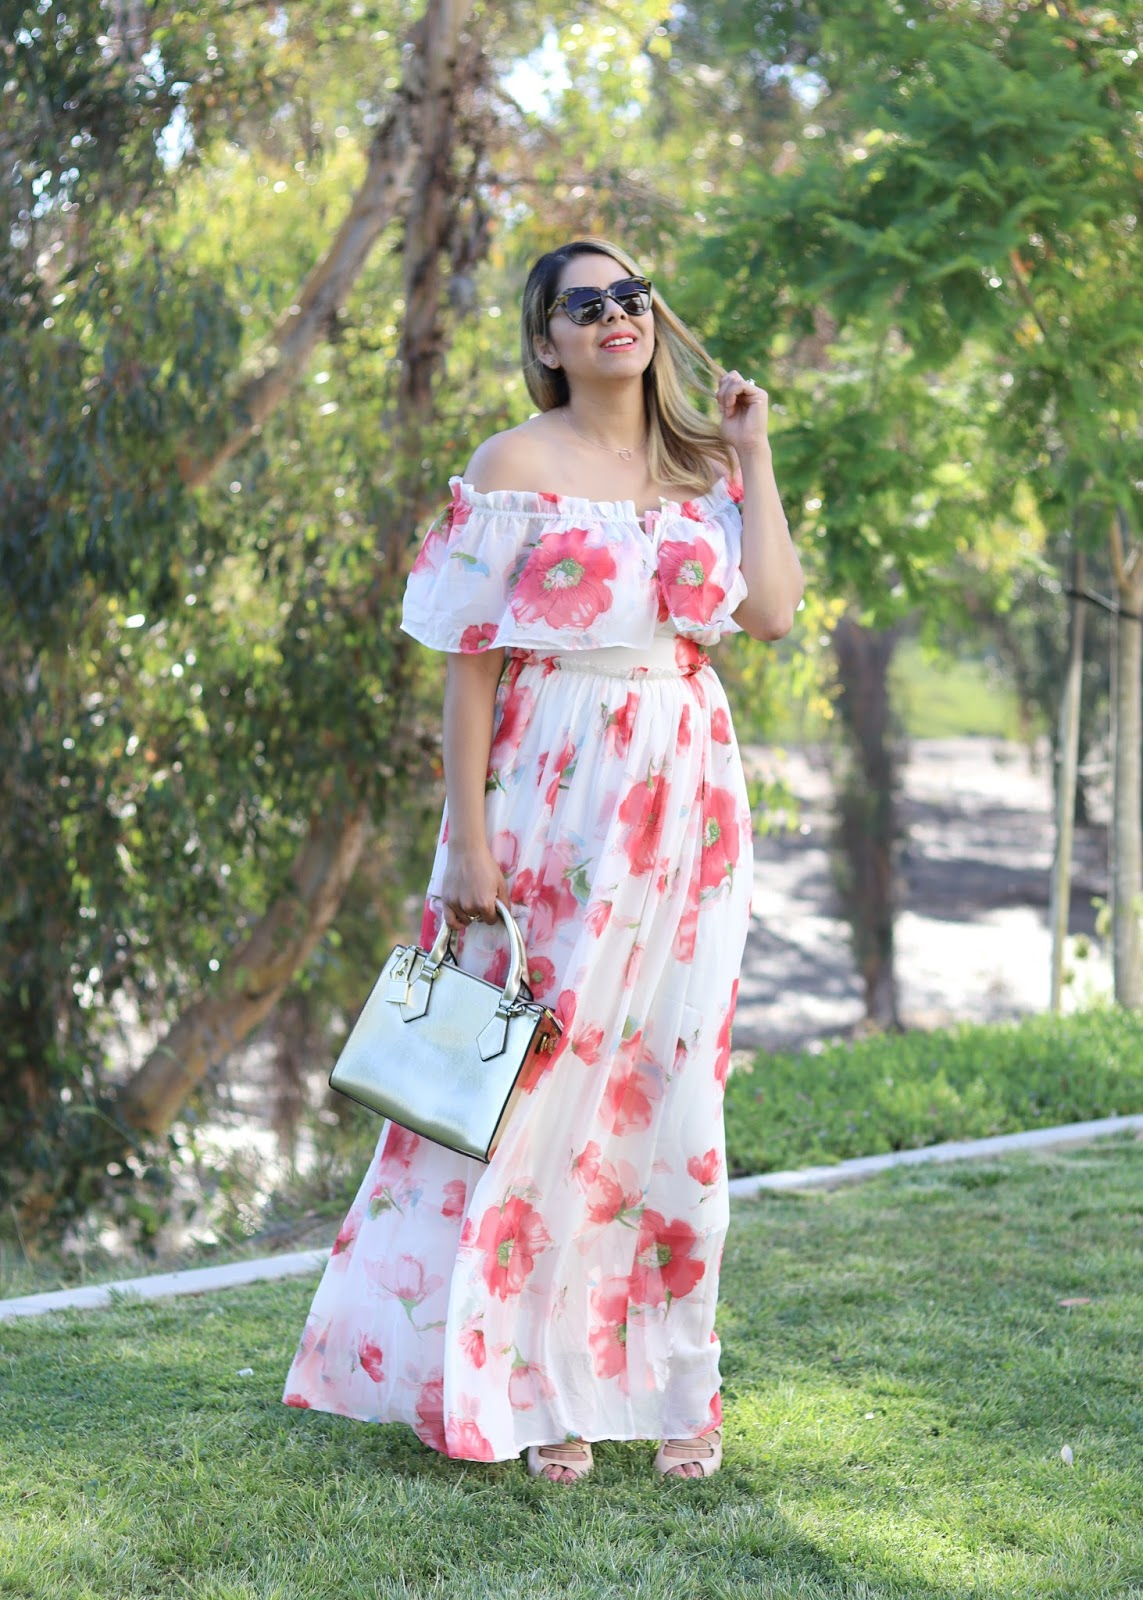 Summer maxi dress, flowy maxi dress, summer fashion, what to wear to a wedding